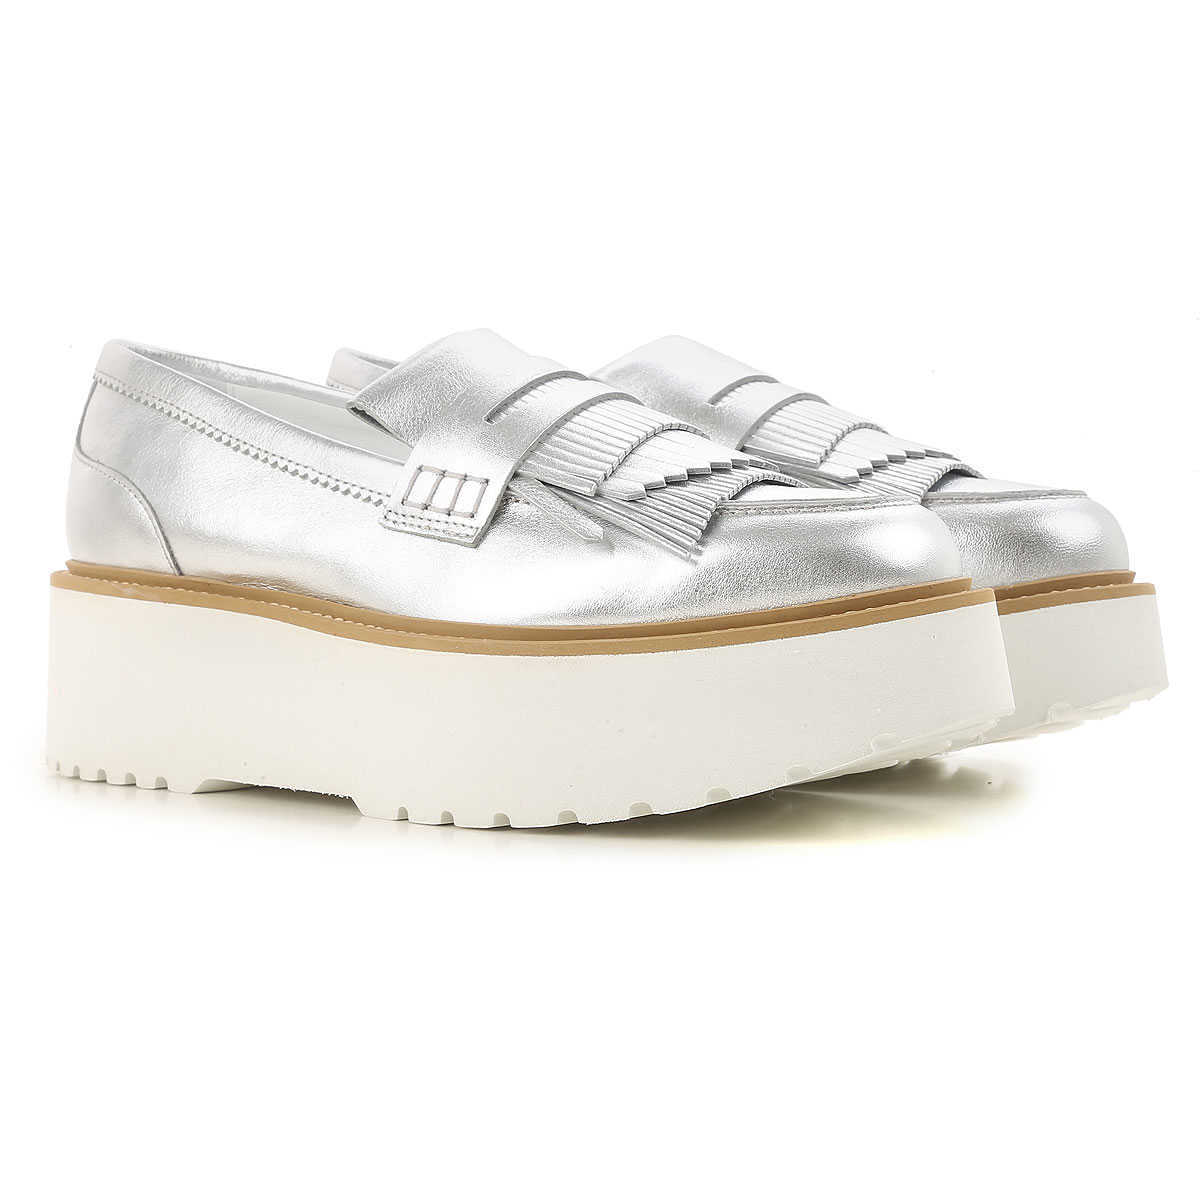 Hogan Loafers for Women On Sale Silver - GOOFASH